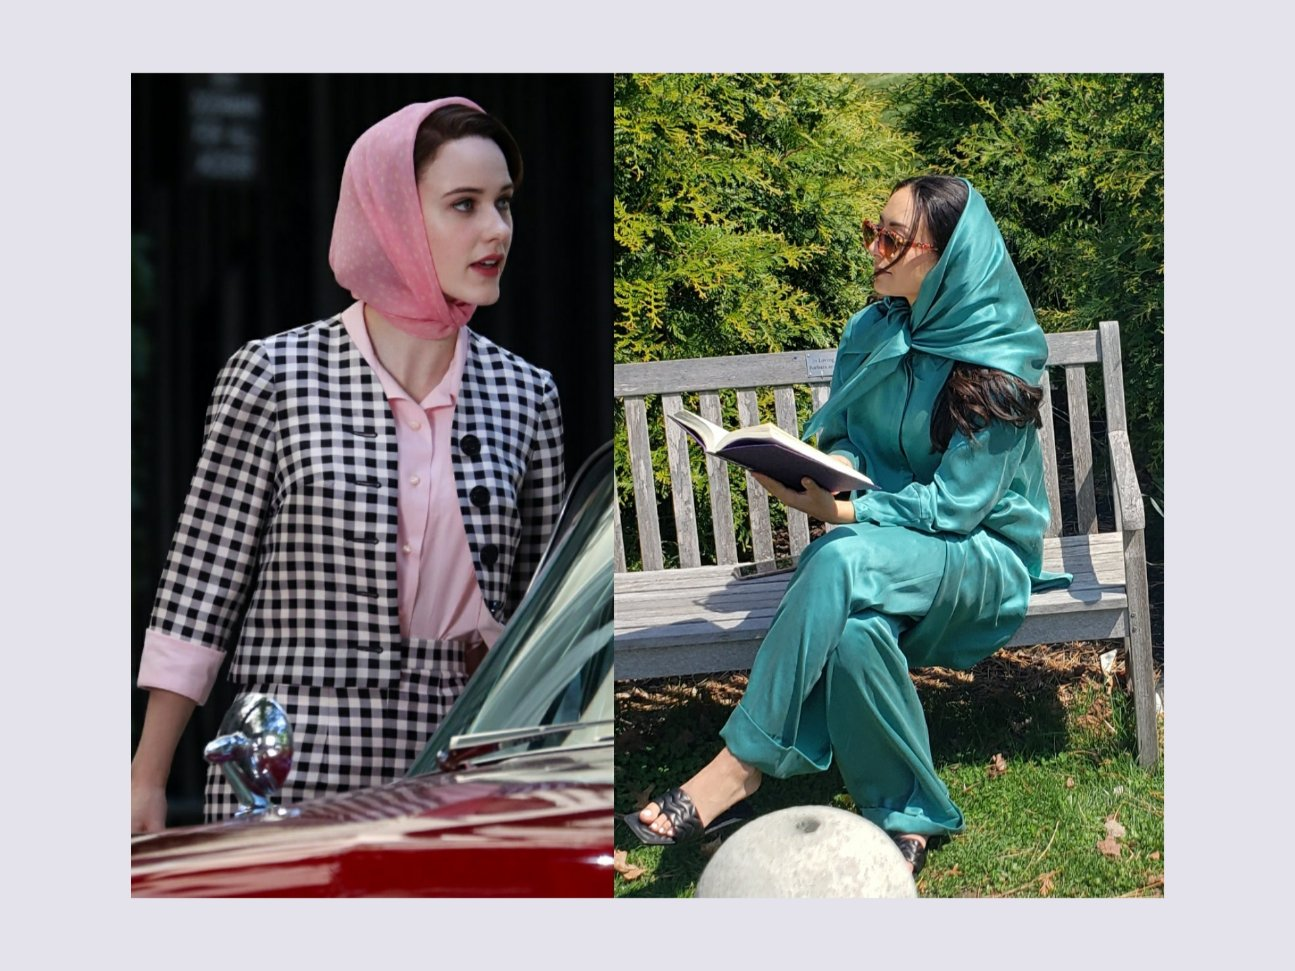 Midge Maisel from The Marvelous Mrs. Maisel fashion. Woman in old vintage fashion wearing 60s silk headscarf to protect hair.